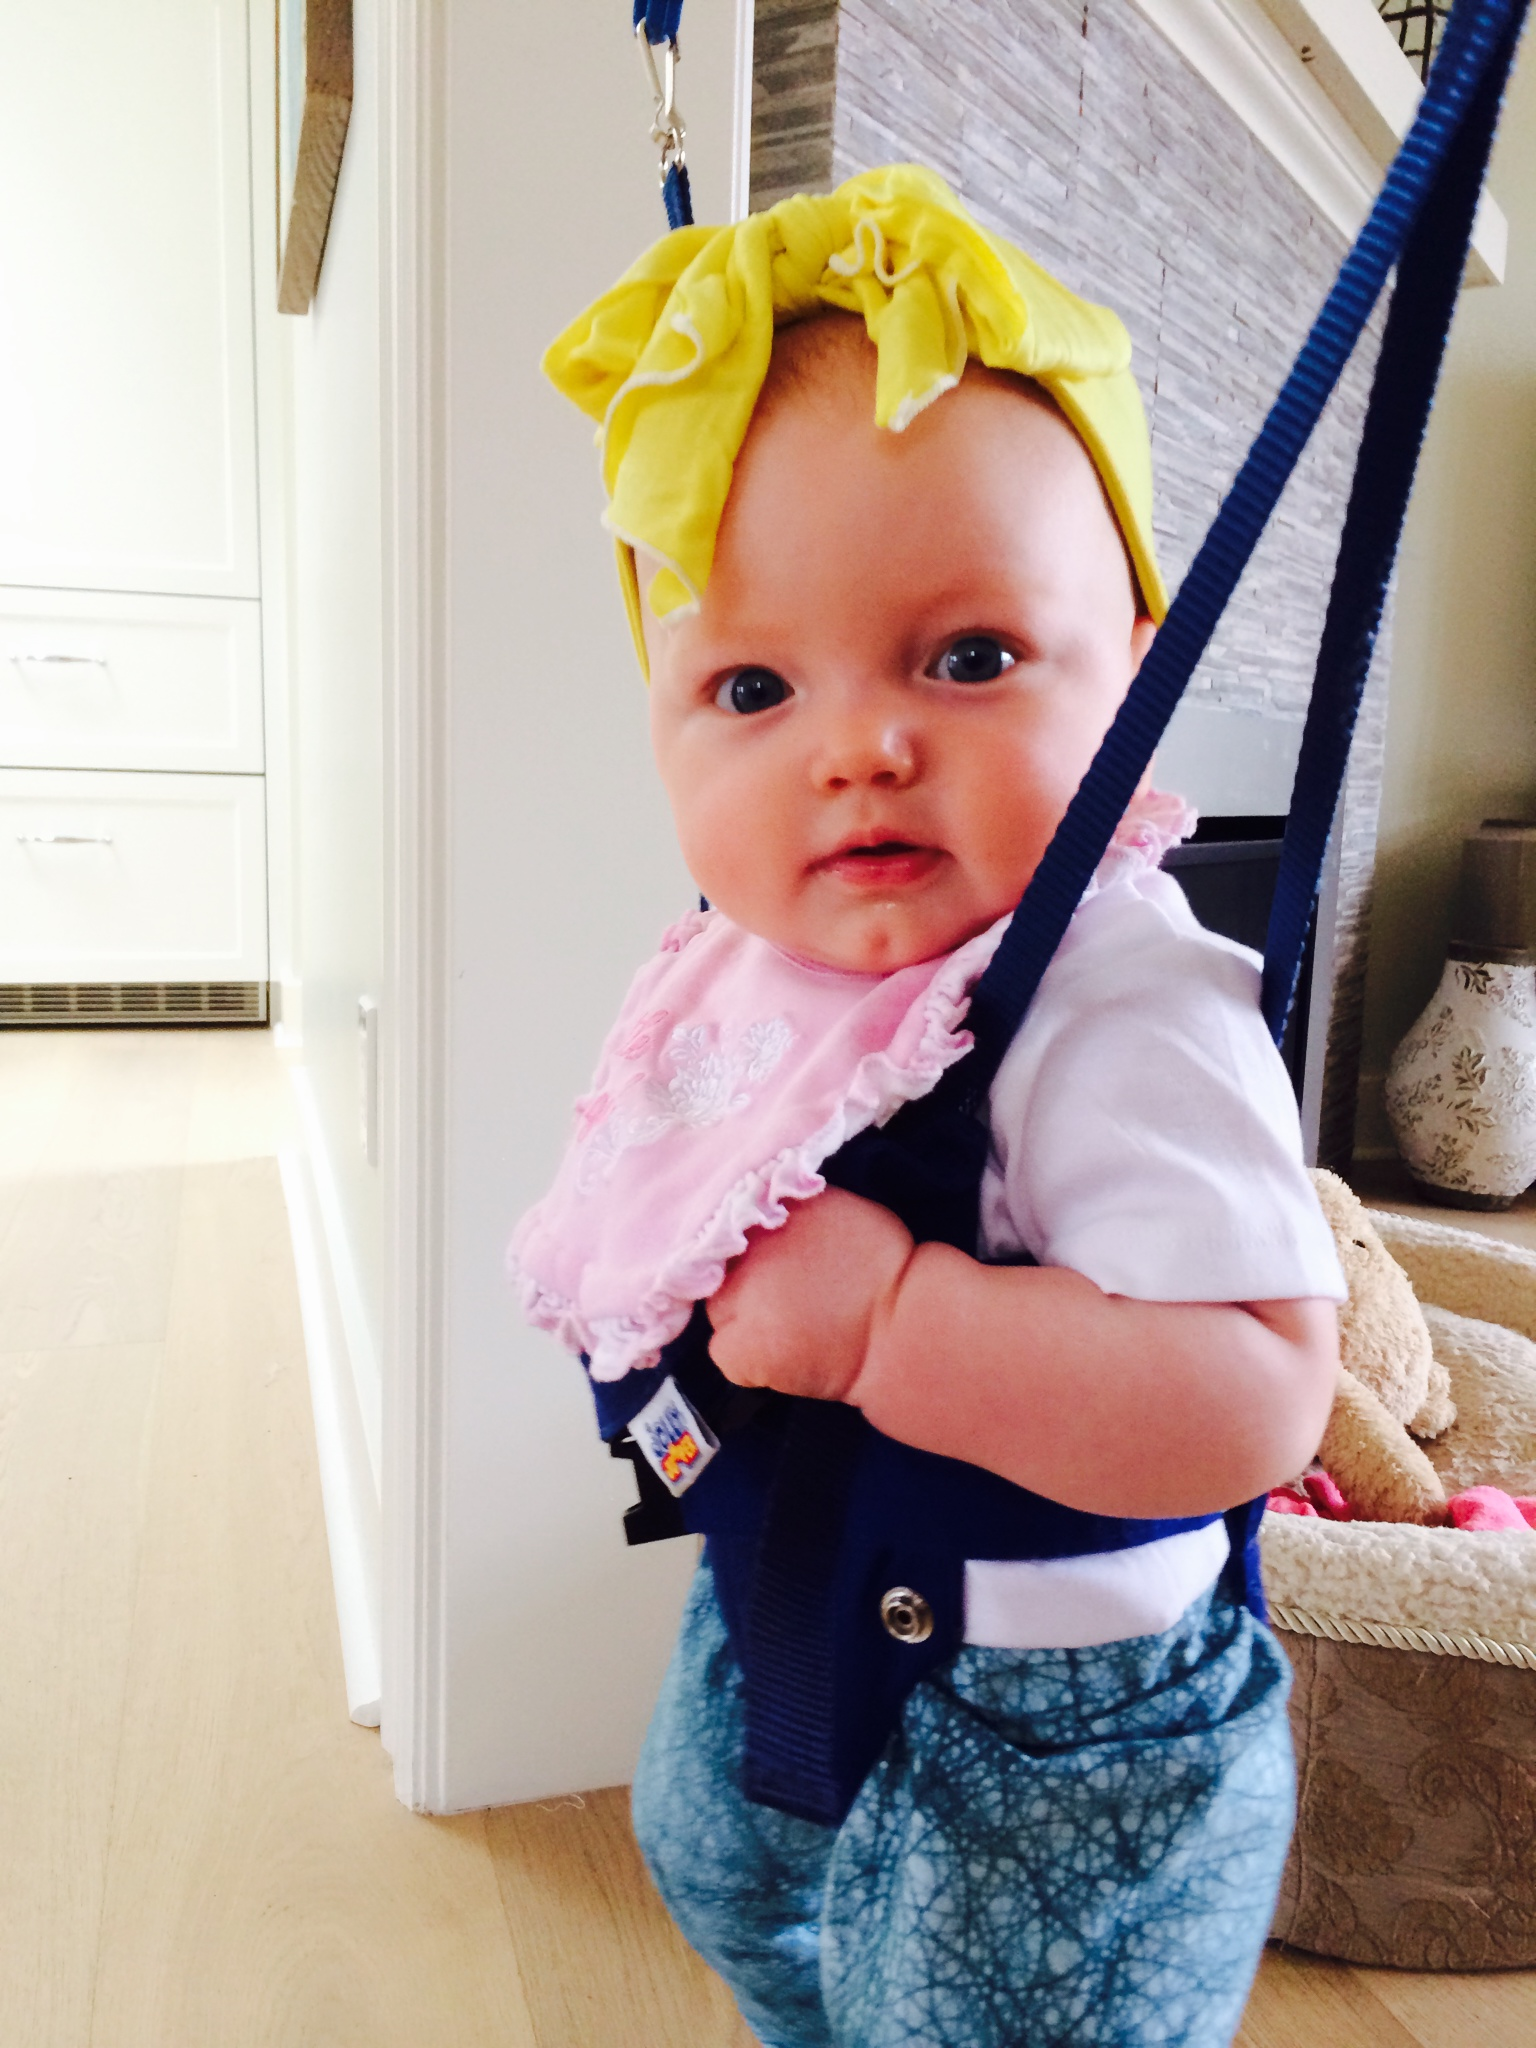 Turns out the HU headband is perfect (and so awesome) as a baby headband too!